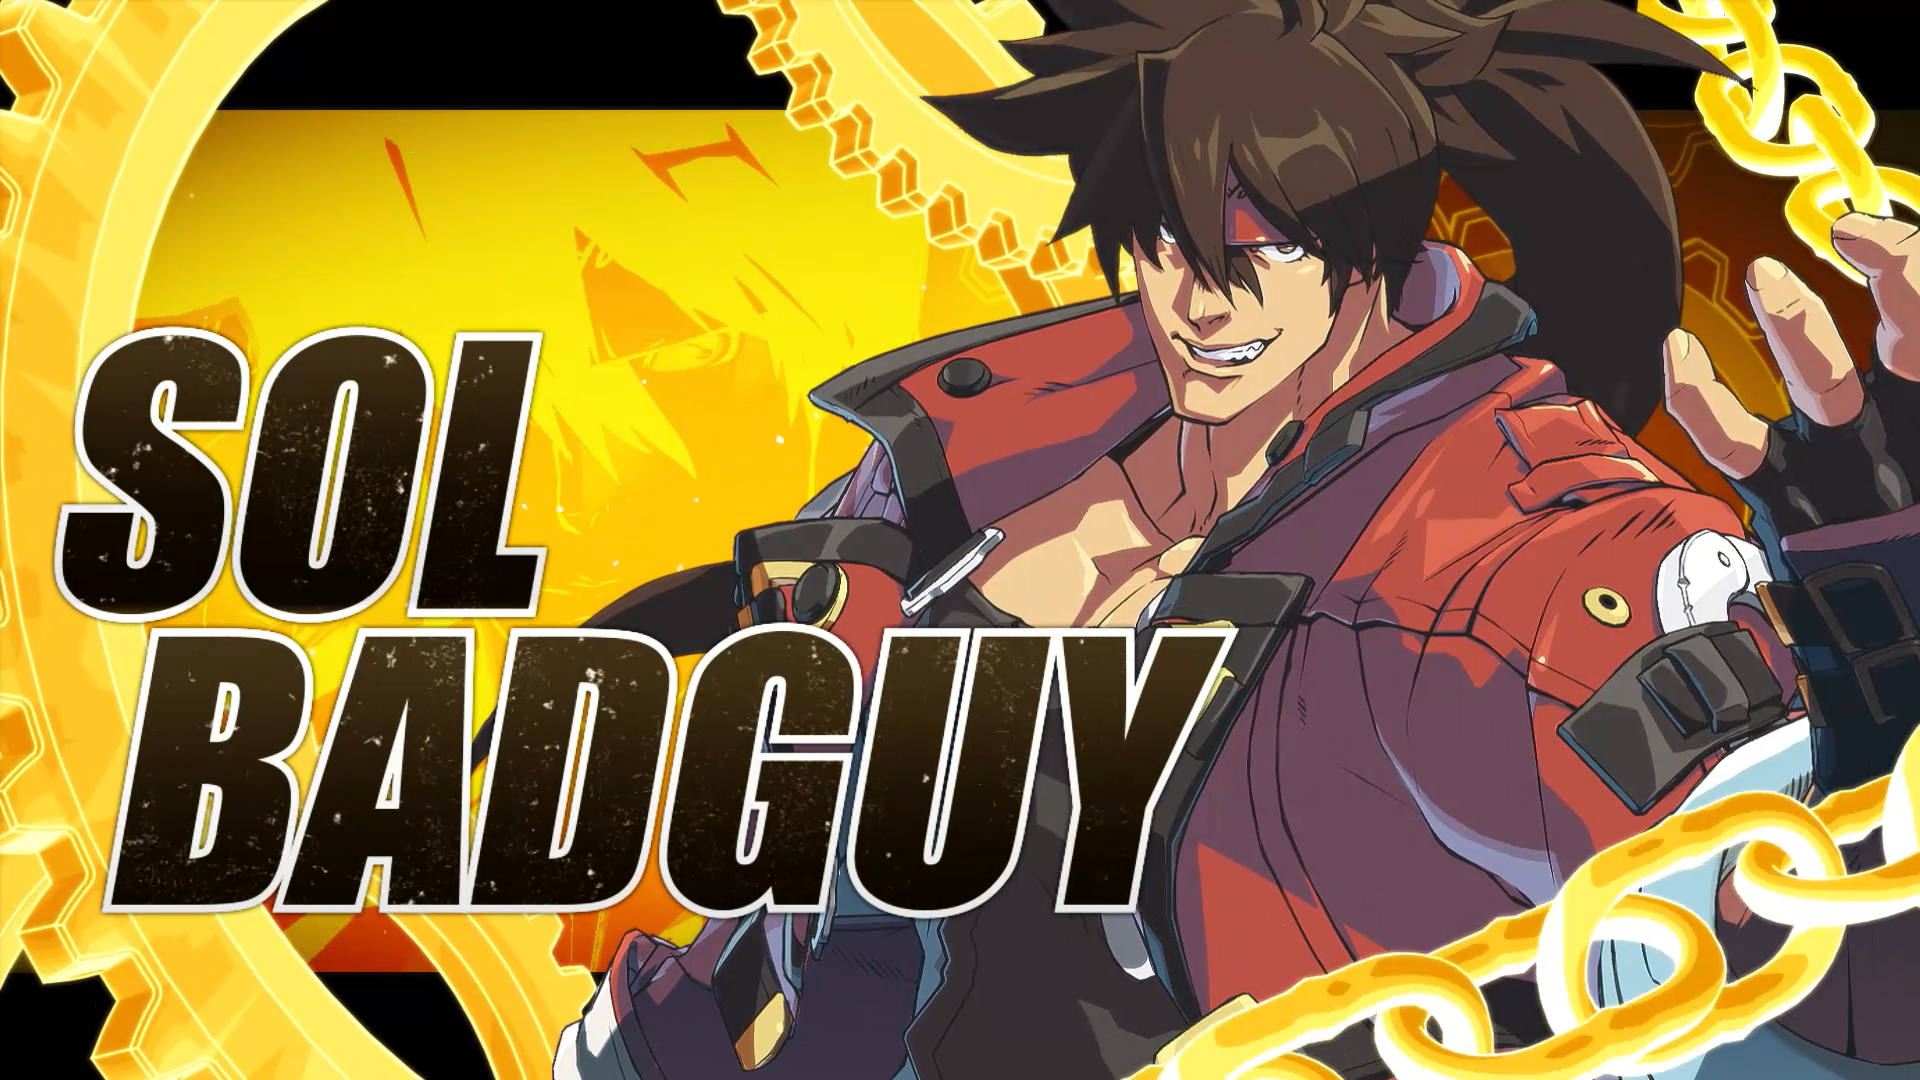 New-Guilty-Gear_2019_09-12-19_001.png